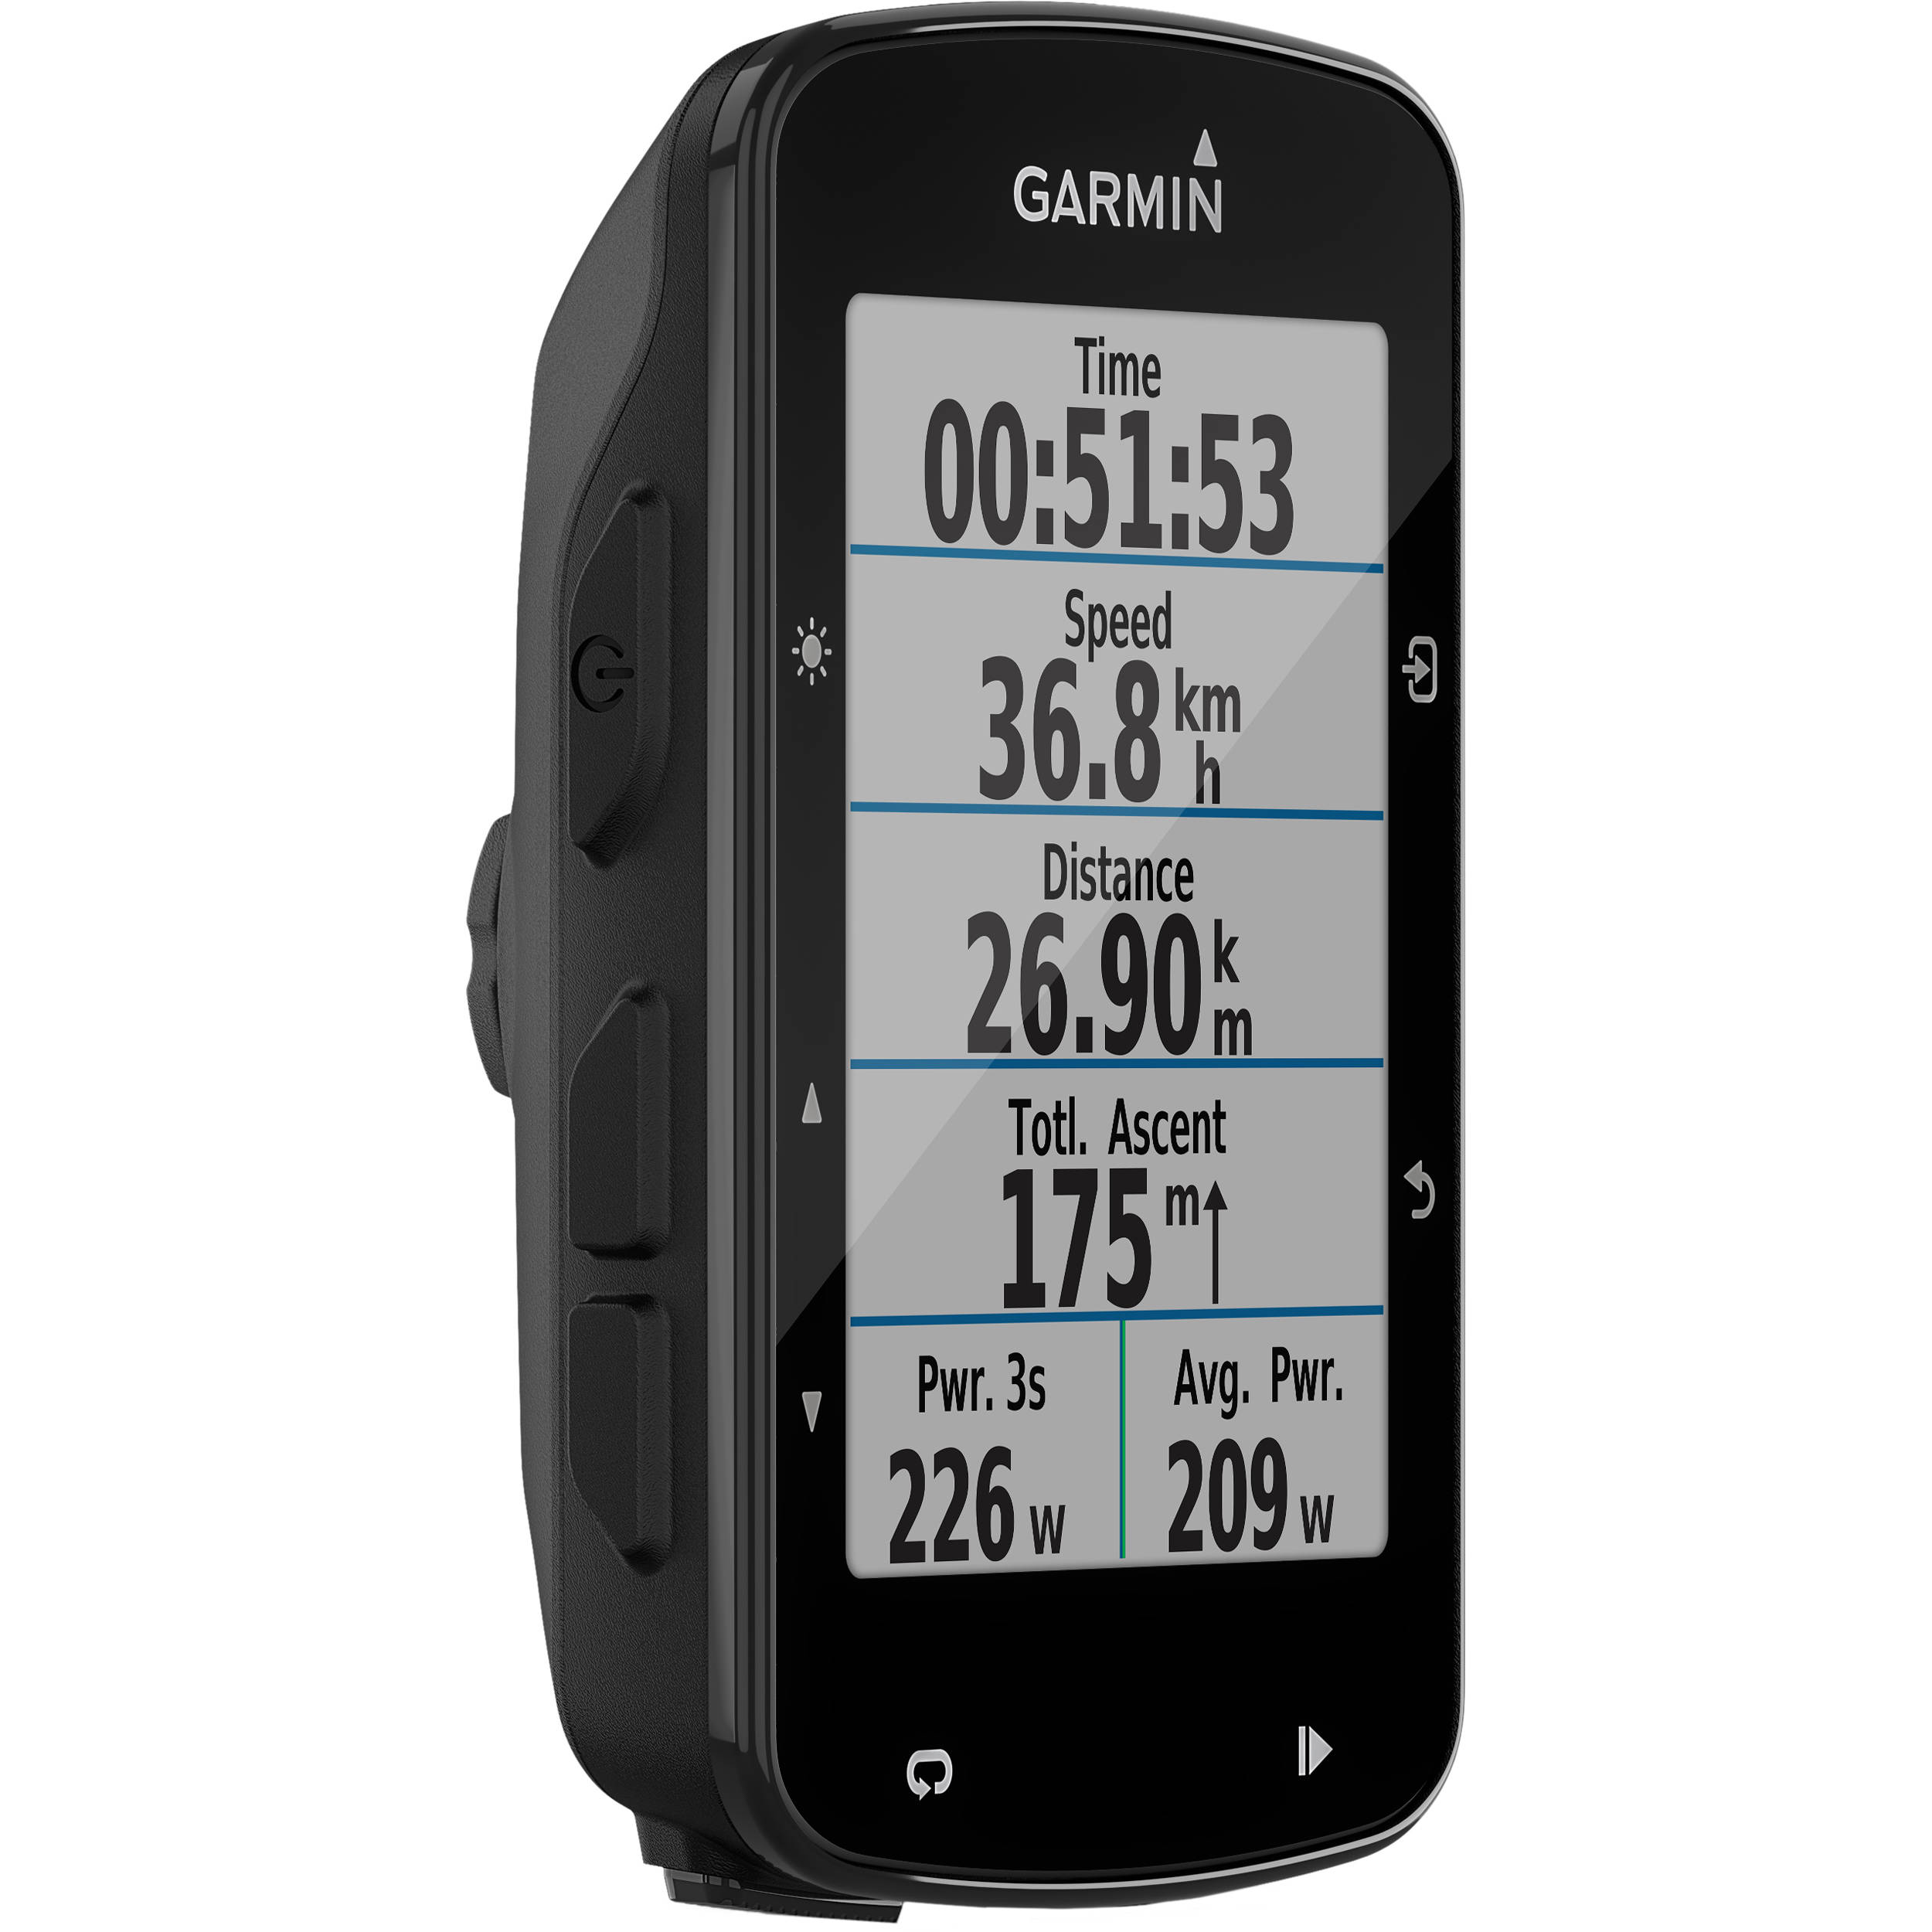 Garmin Cycle Computer >> Garmin Edge 520 Plus Gps Glonass Cycling Computer 010 02083 00